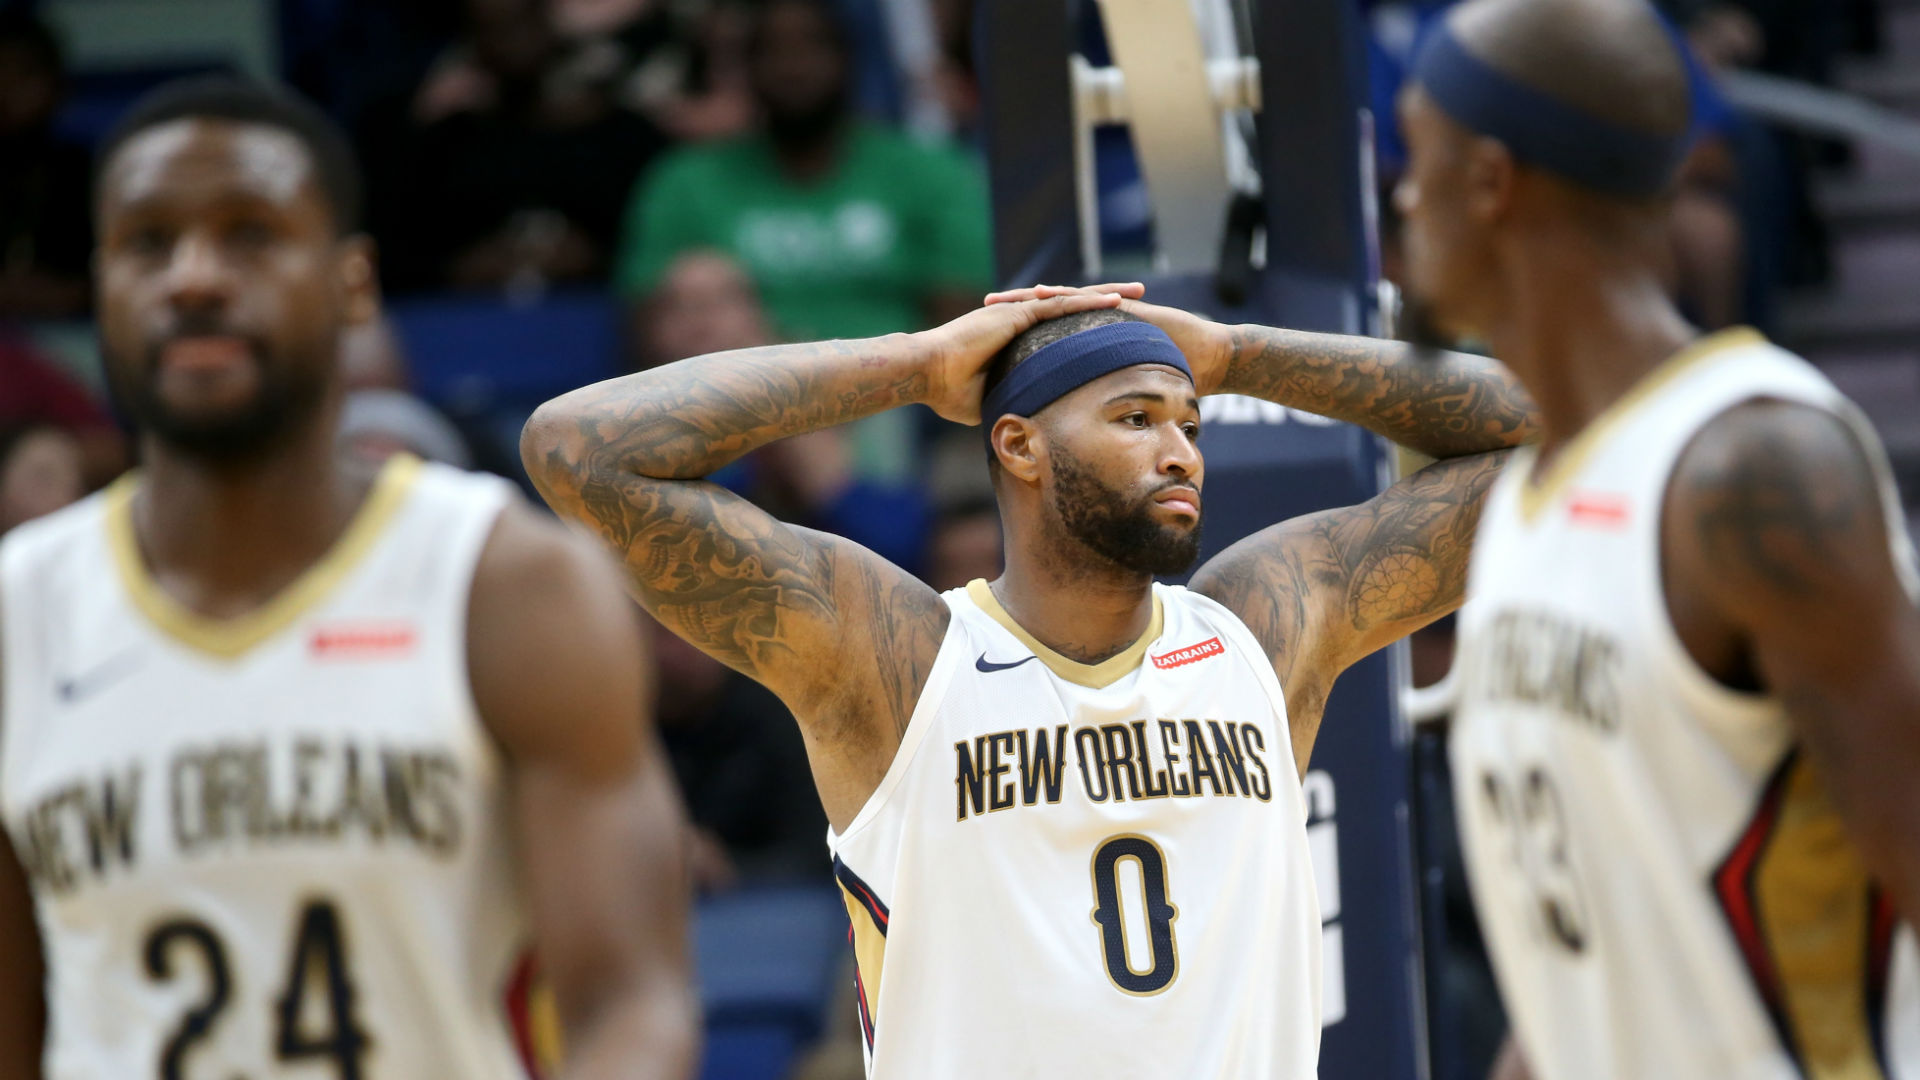 DeMarcus Cousins-to-Warriors uproar ignores reality of what signing gives Golden State